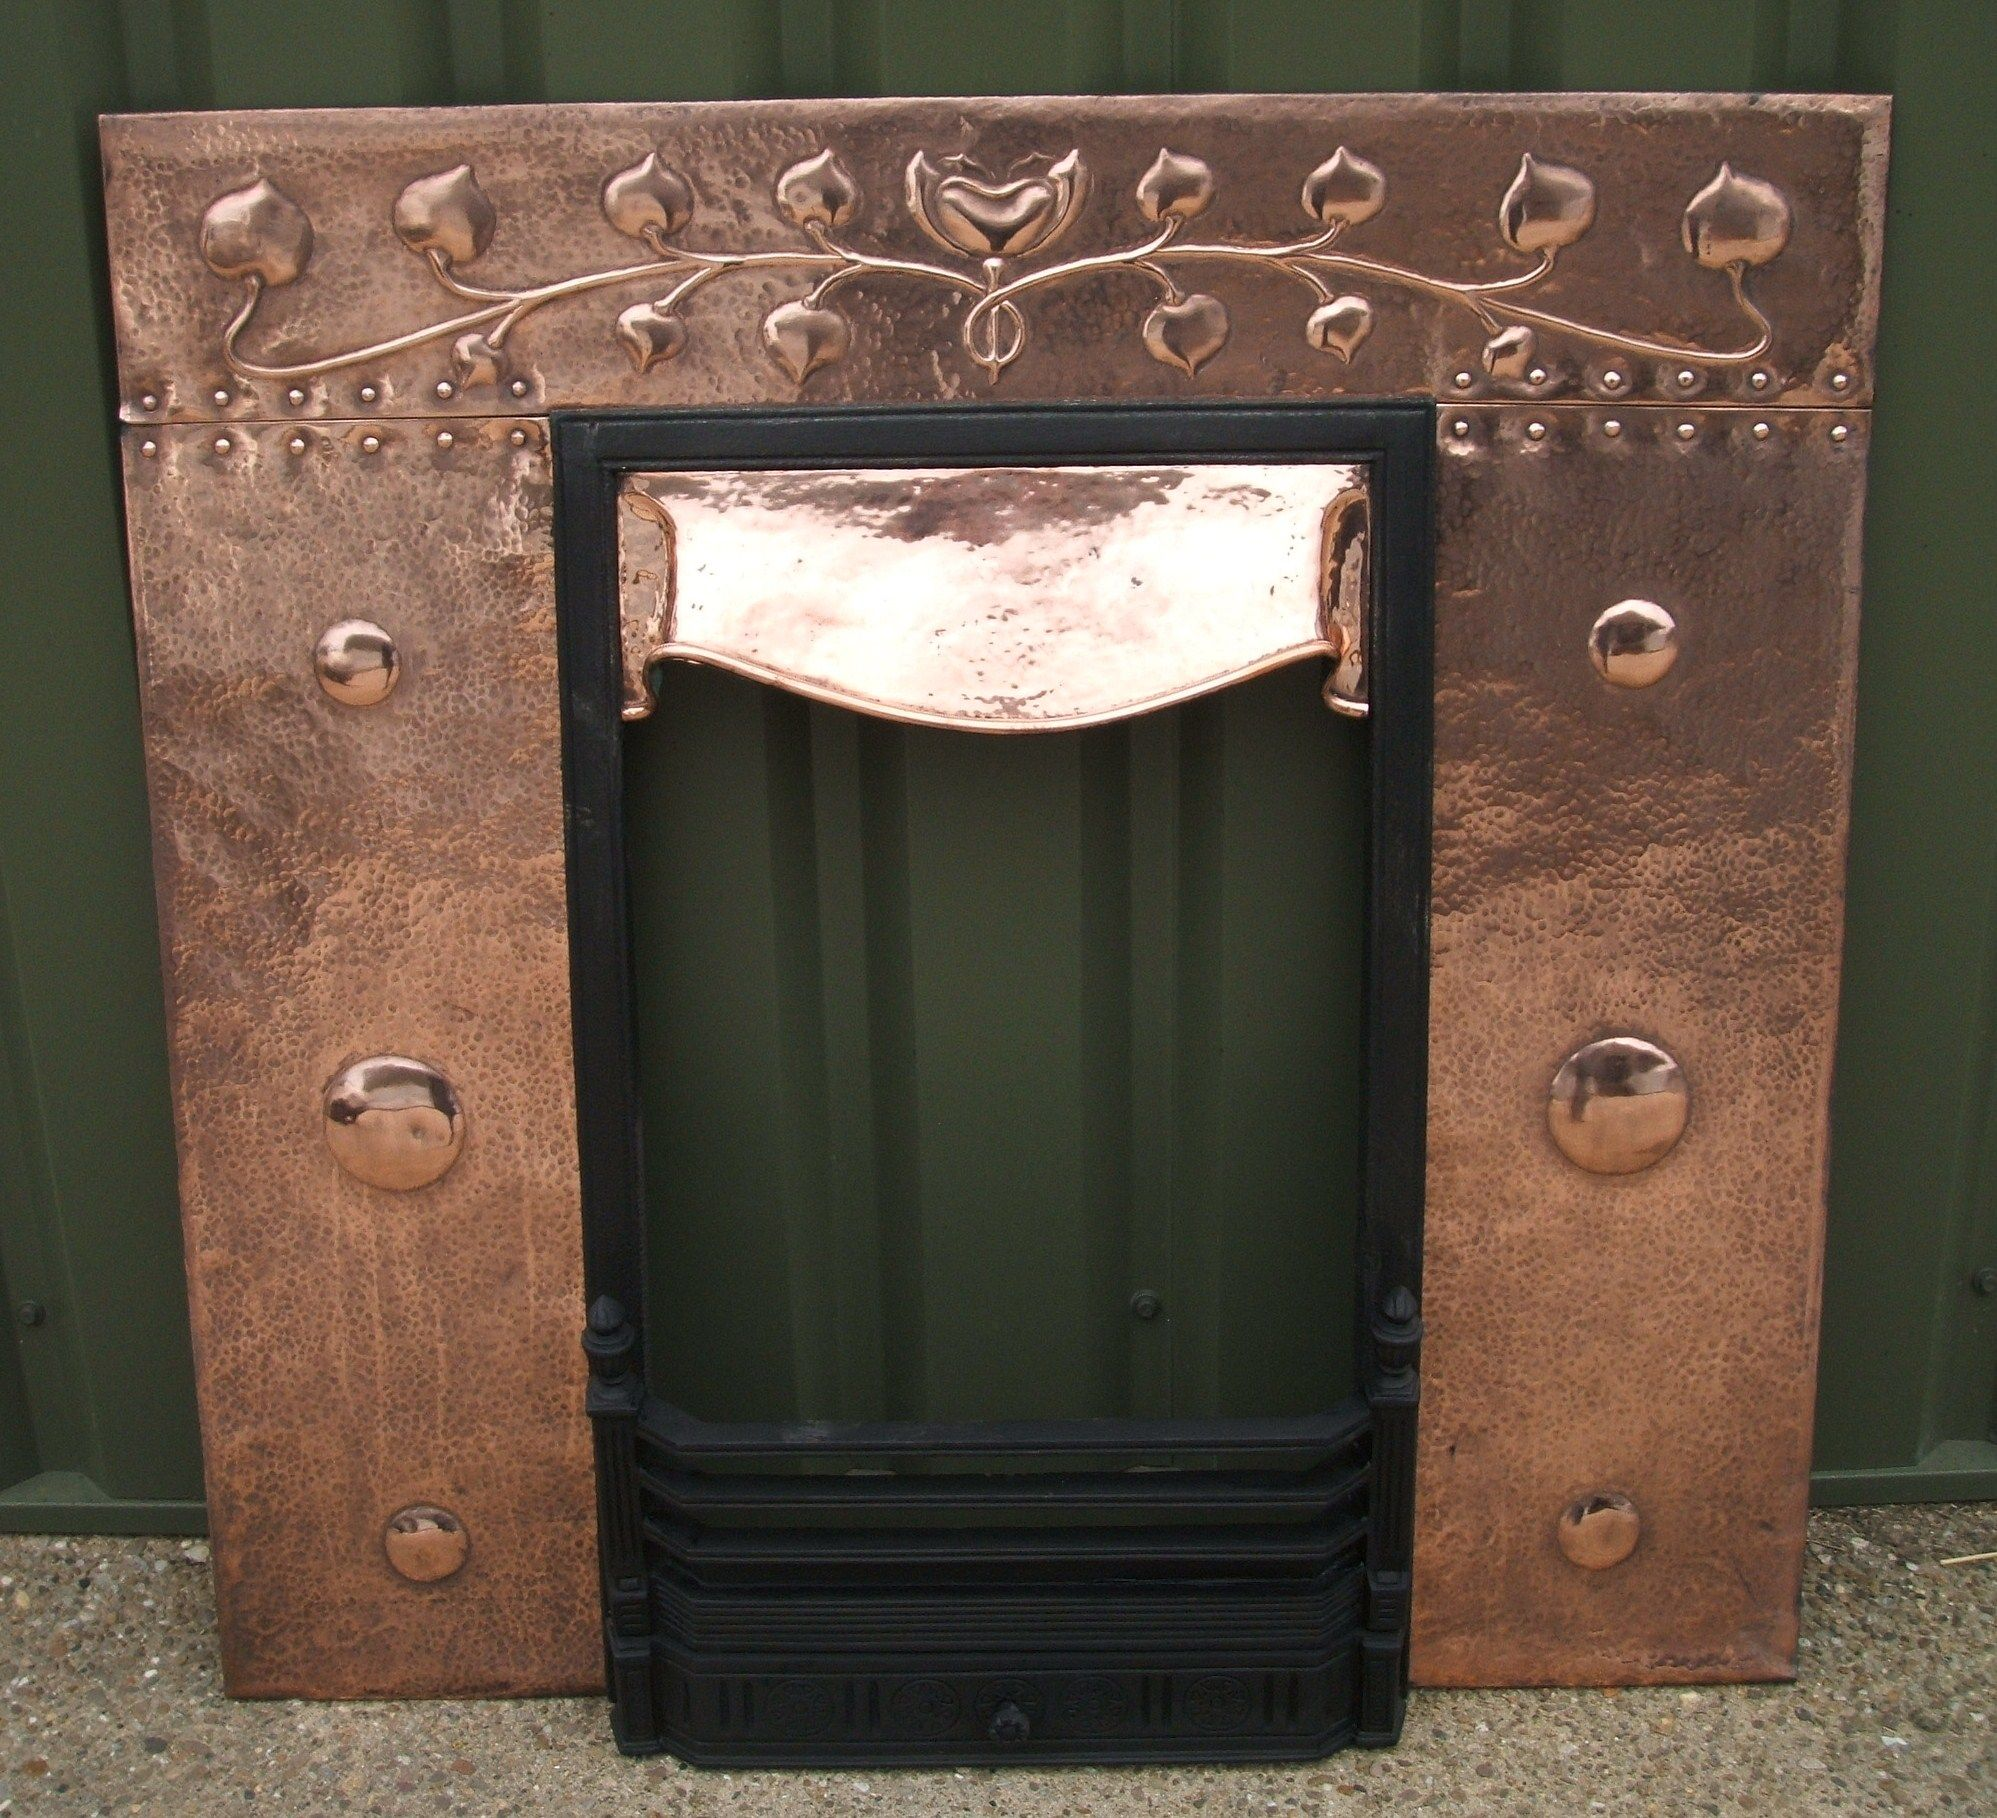 arts and crafts copper insert for a fireplace craftsman style